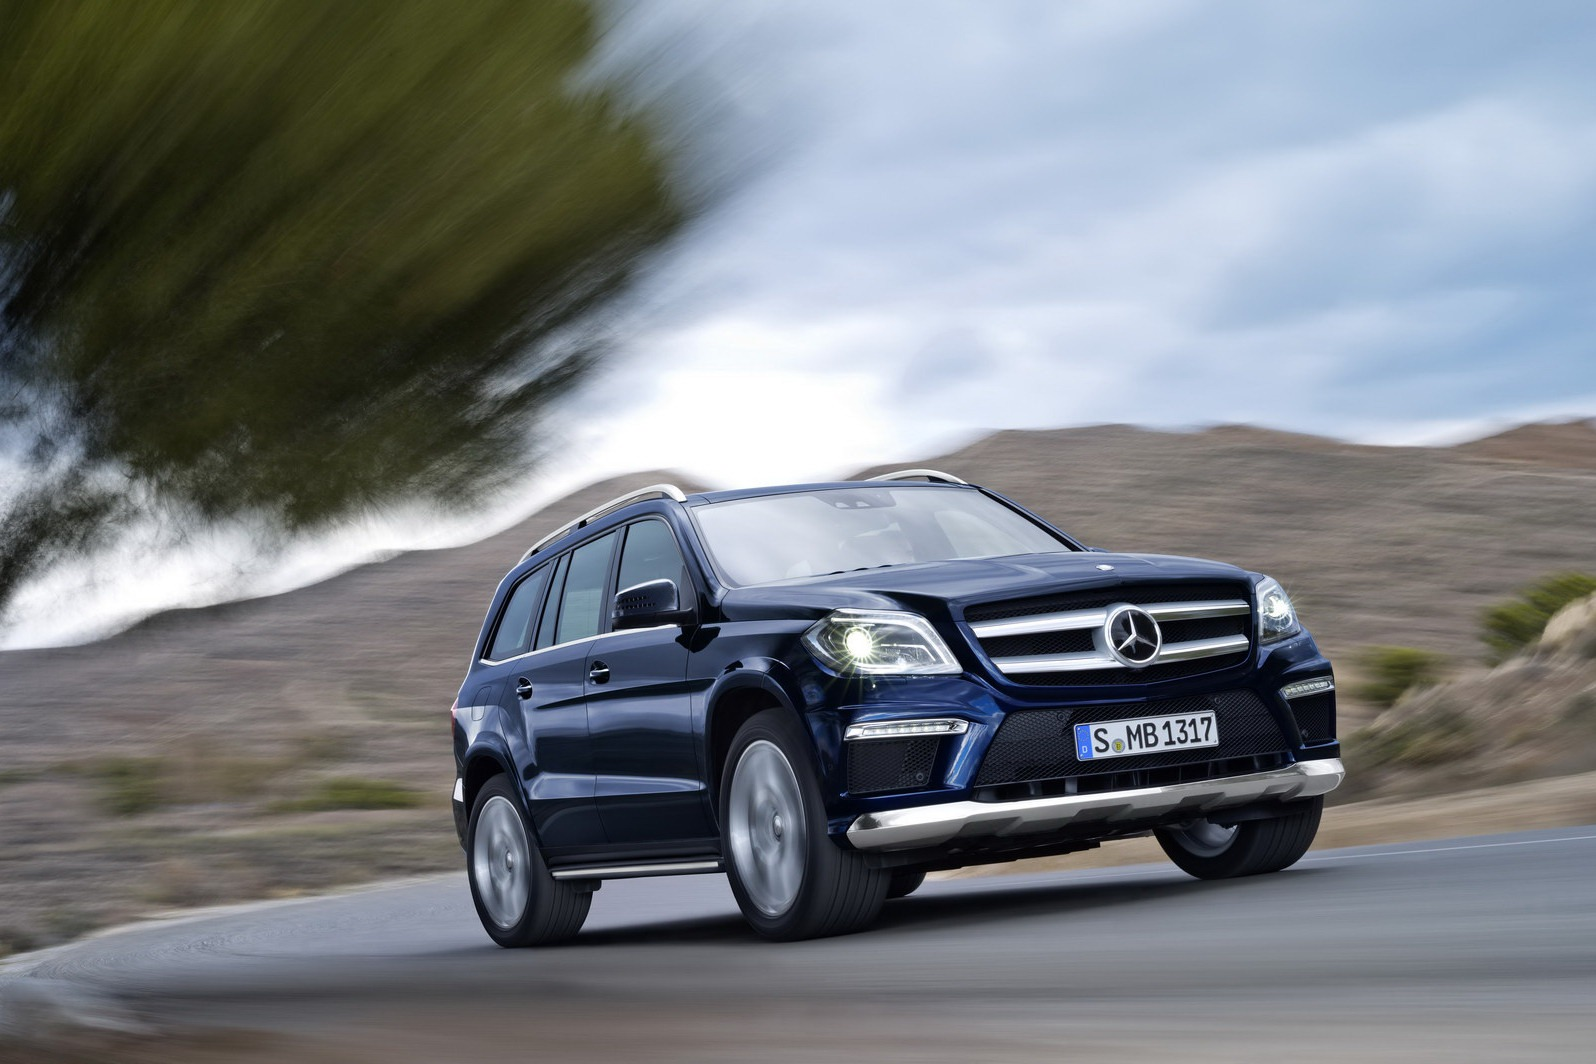 2013 mercedes benz gl class luxury suv unveiled for Mercedes benz luxury truck